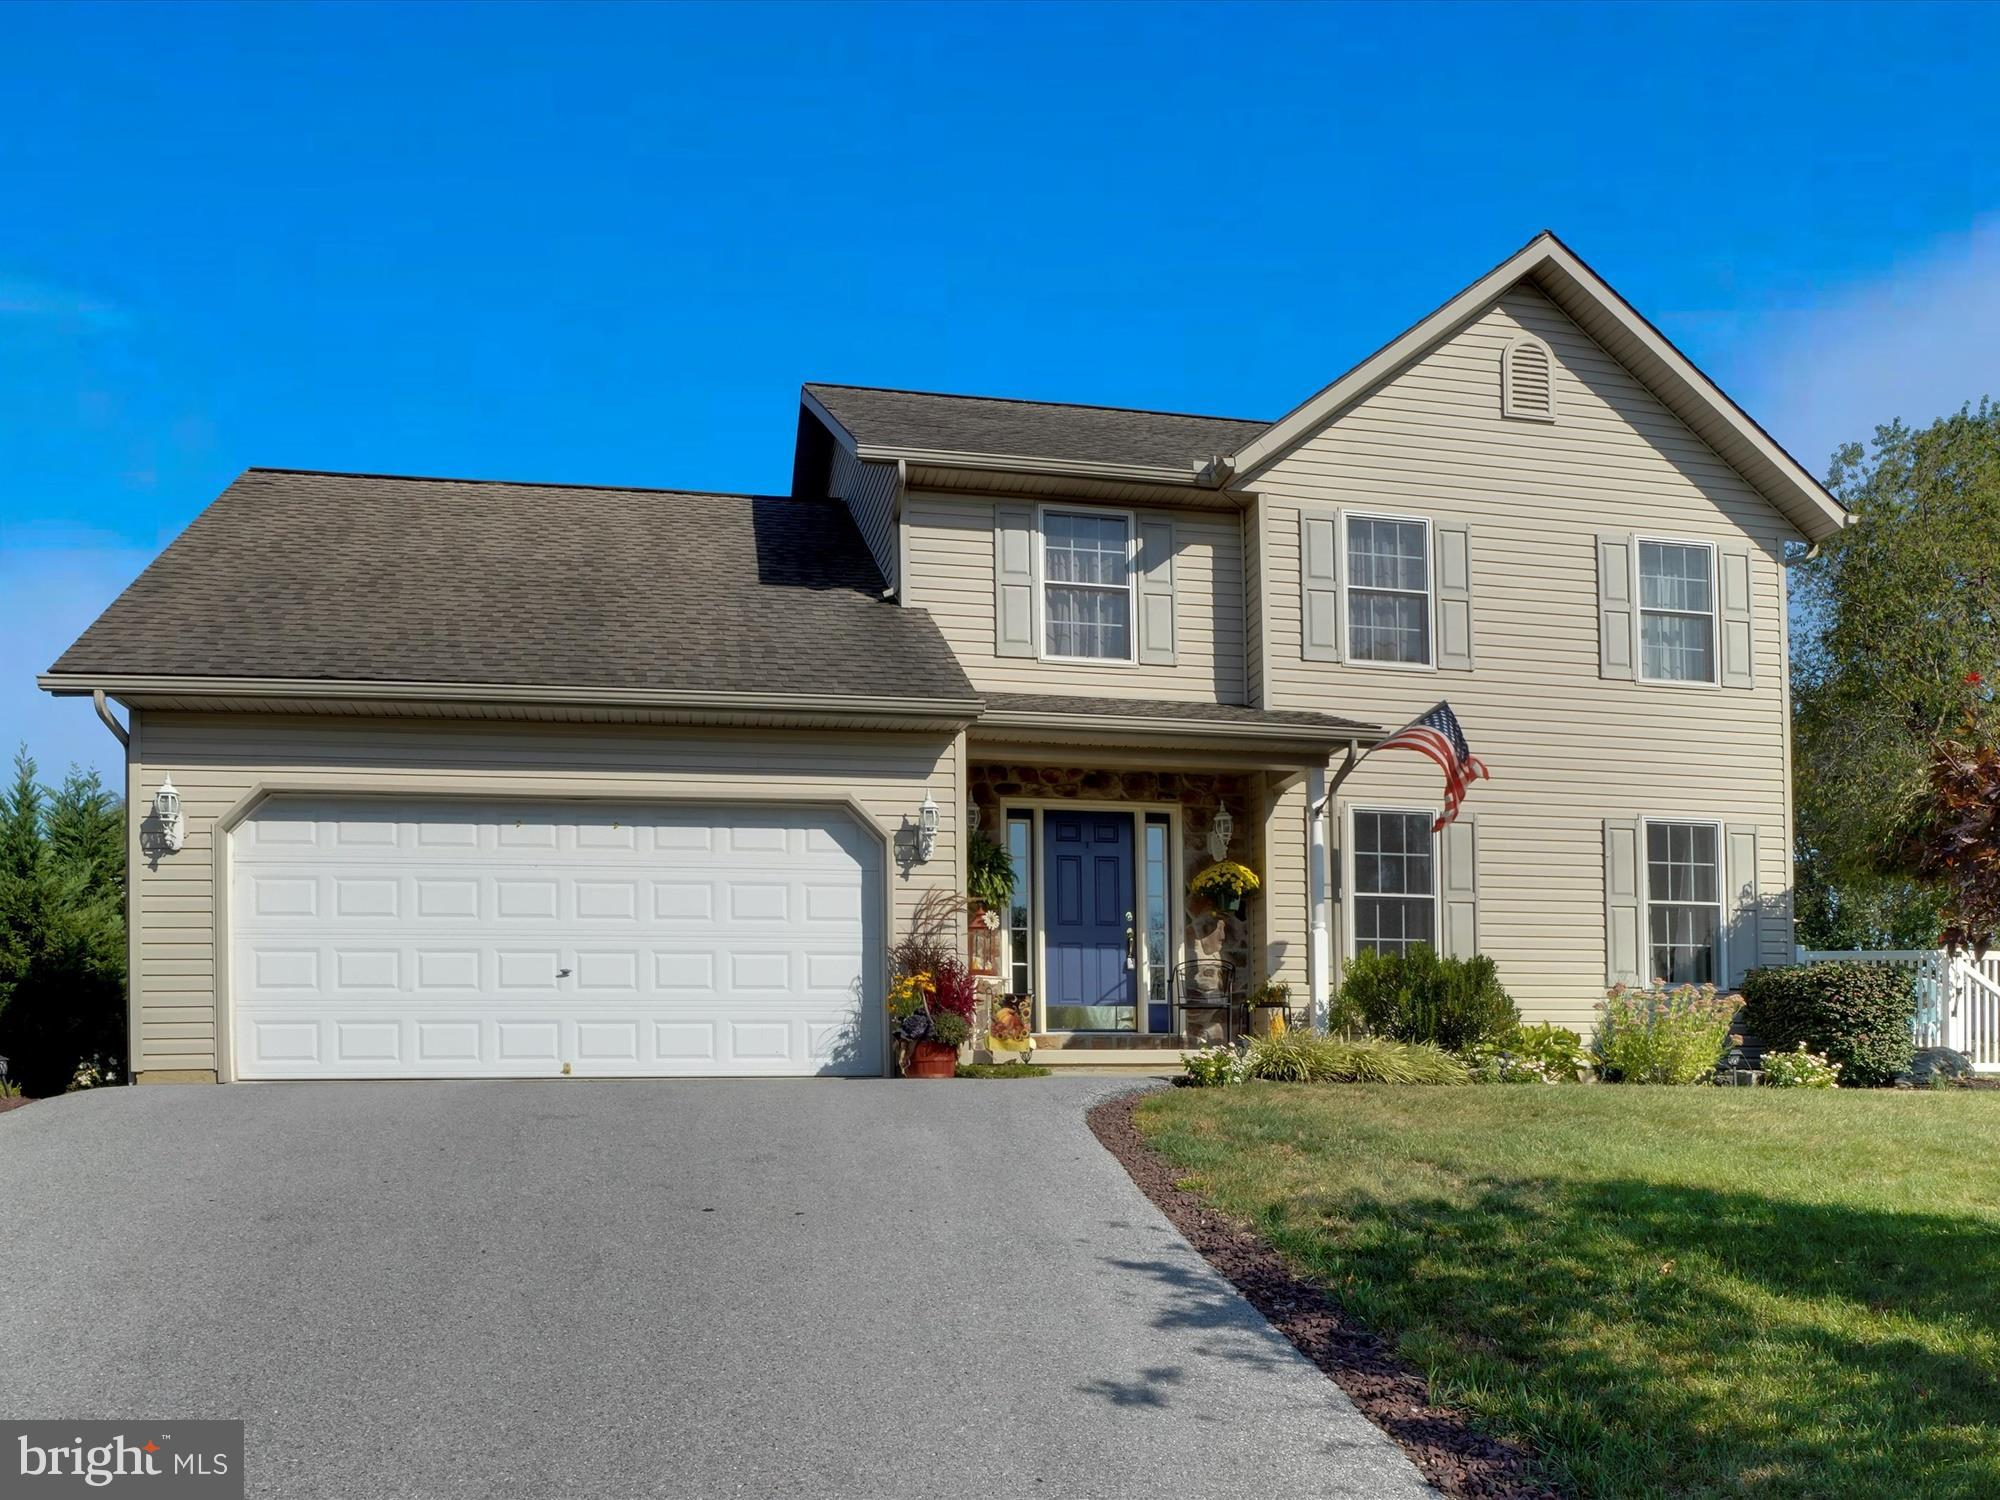 1445 TODD COURT, ANNVILLE, PA 17003